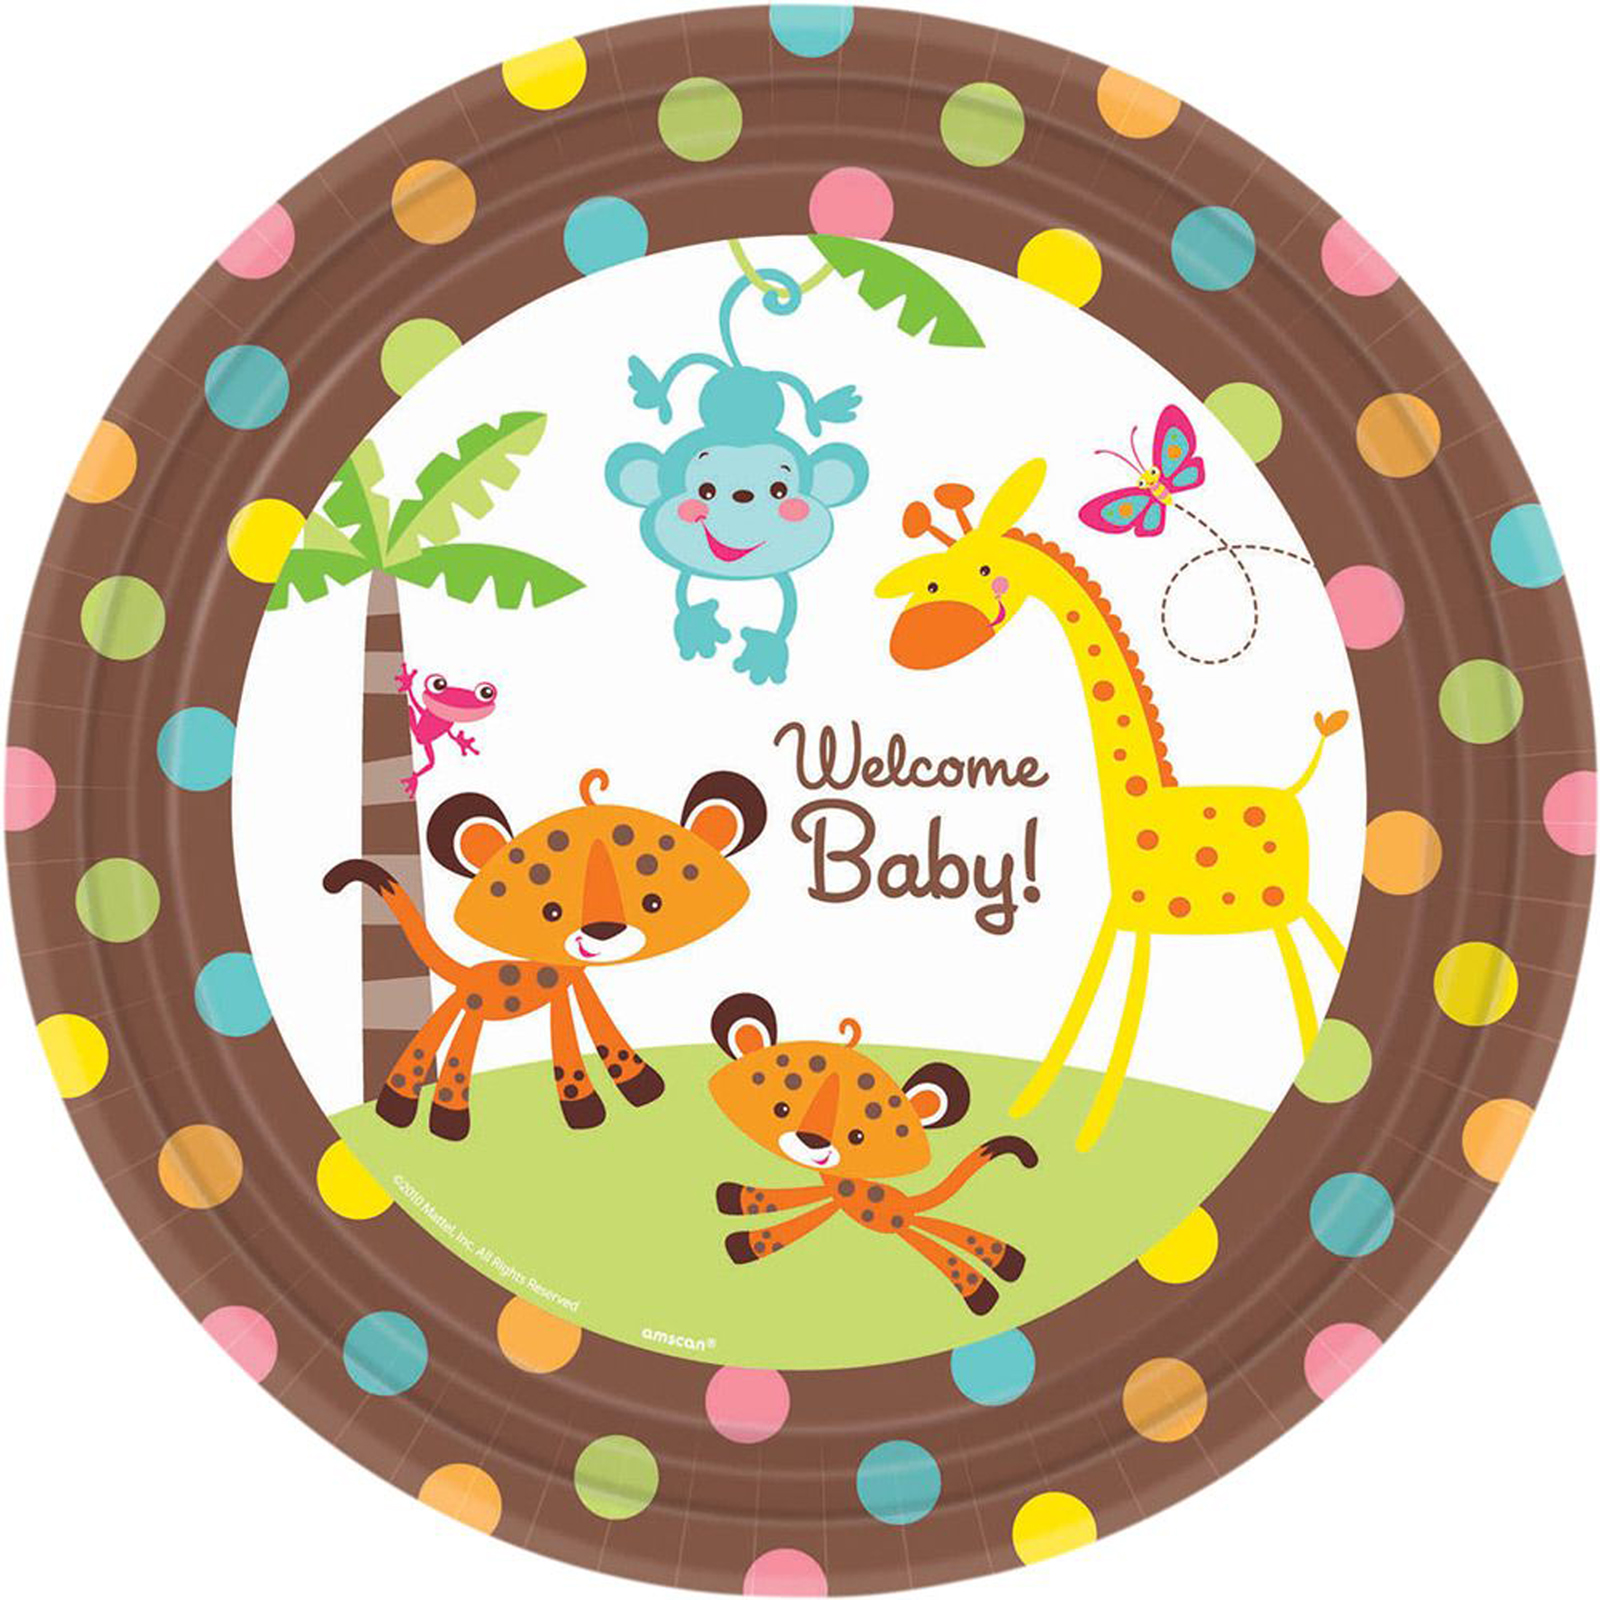 Fisher Price Baby Shower Banquet Dinner Plates (8 Count) by Fisher-Price